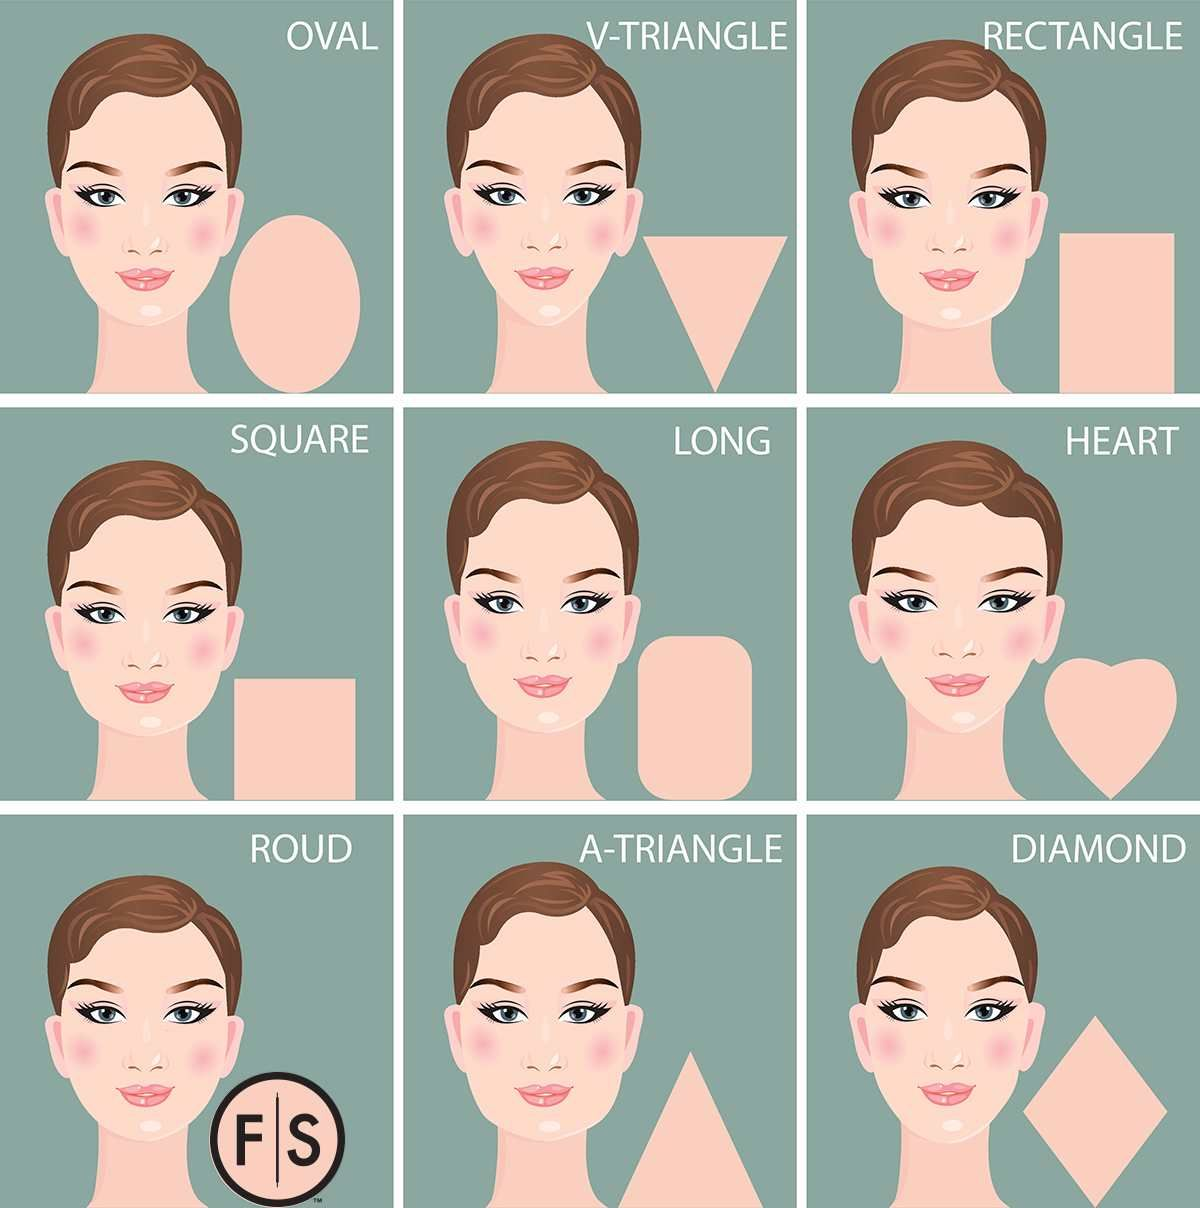 The Best Women S Haircuts For Your Face Shape Face Shape Hairstyles Haircut For Face Shape Short Shaggy Haircuts